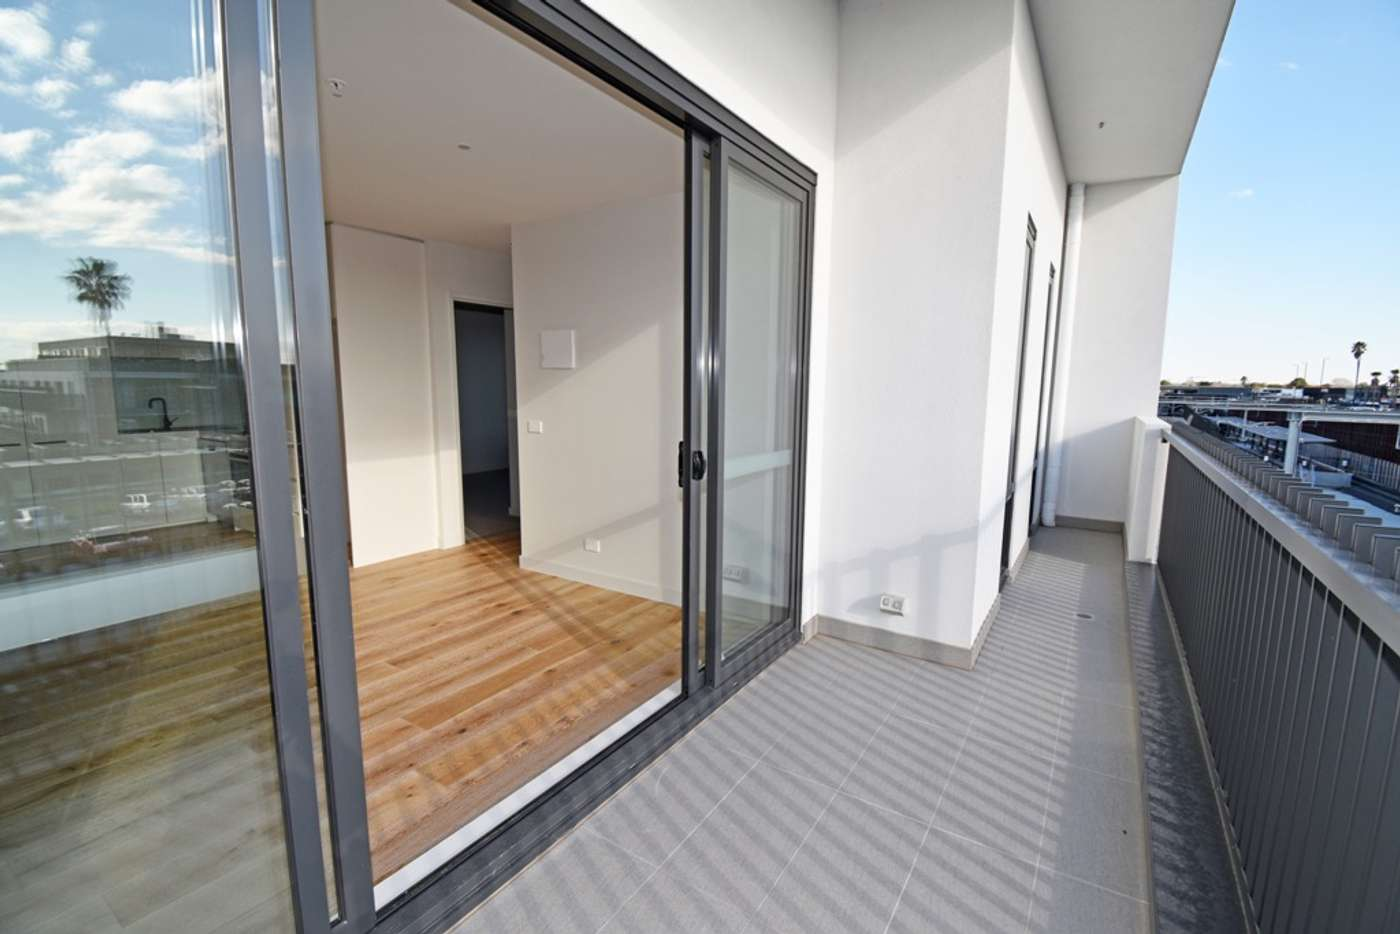 Sixth view of Homely apartment listing, 204/23 Bent Street, Bentleigh VIC 3204